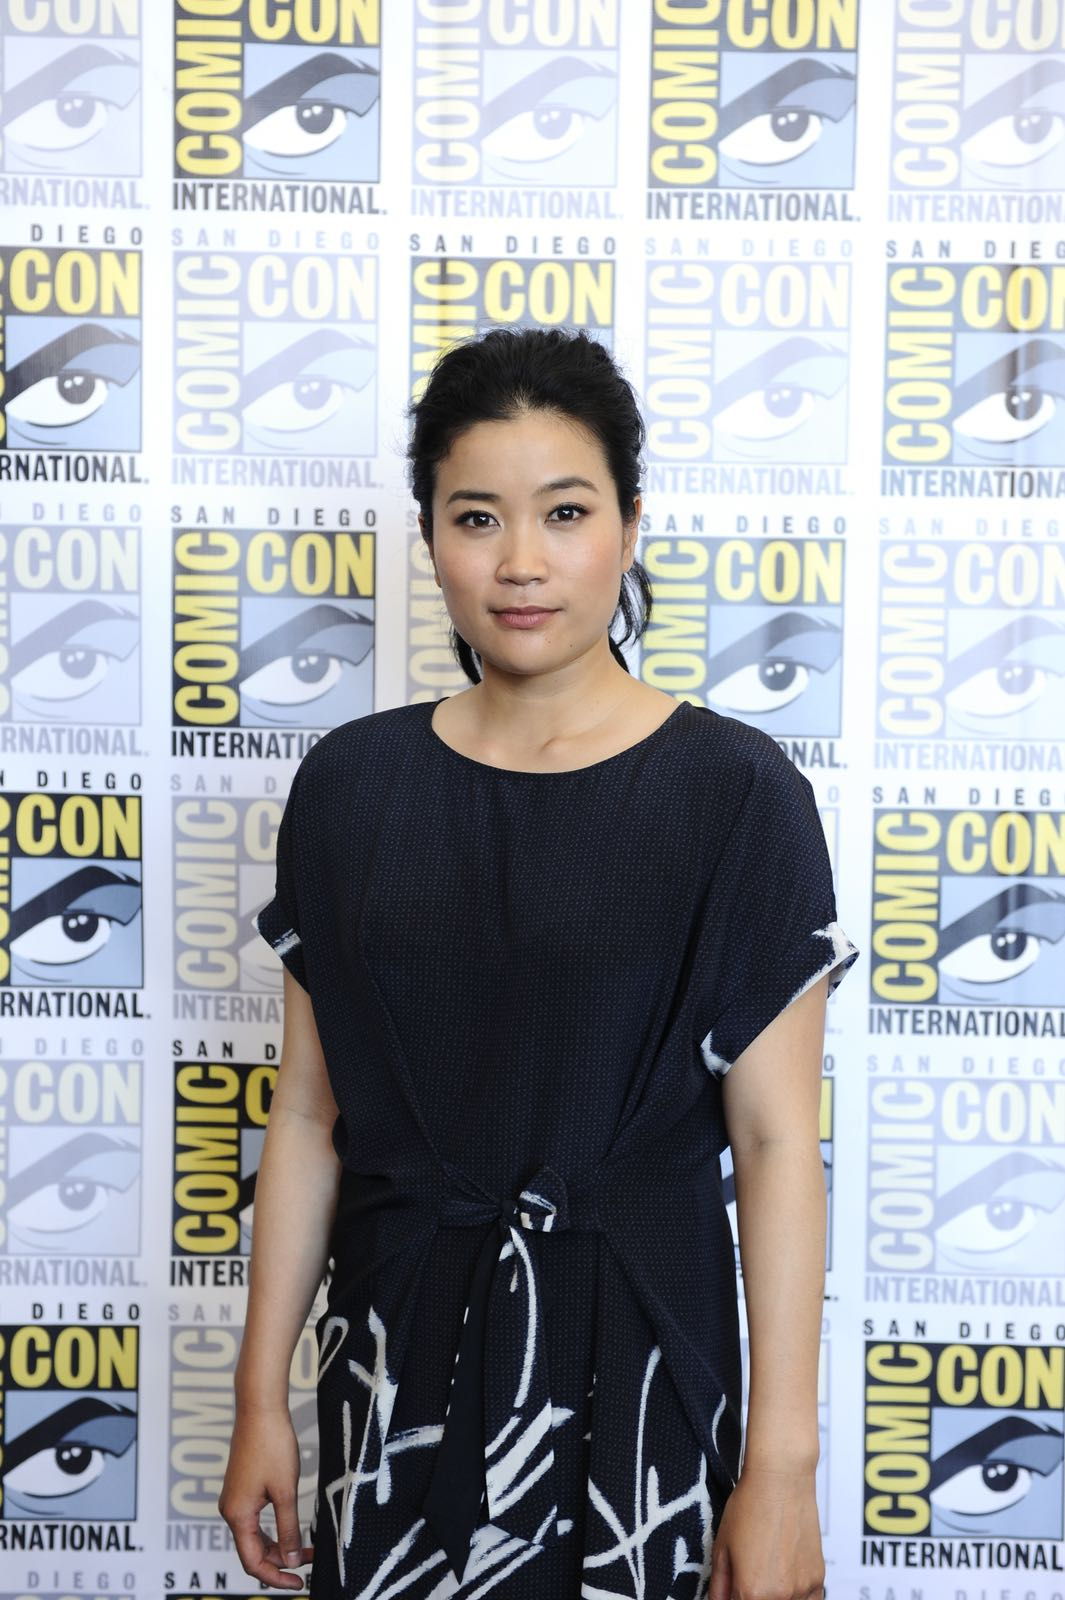 The cast of Scorpion goes live on Facebook with CBS Interactive at COMIC-CON® 2016 in San Diego, California.Pictured: Jadyn Wong Photo: Johnny Vy/CBS ©2016 CBS Broadcasting, Inc. All Rights Reserved